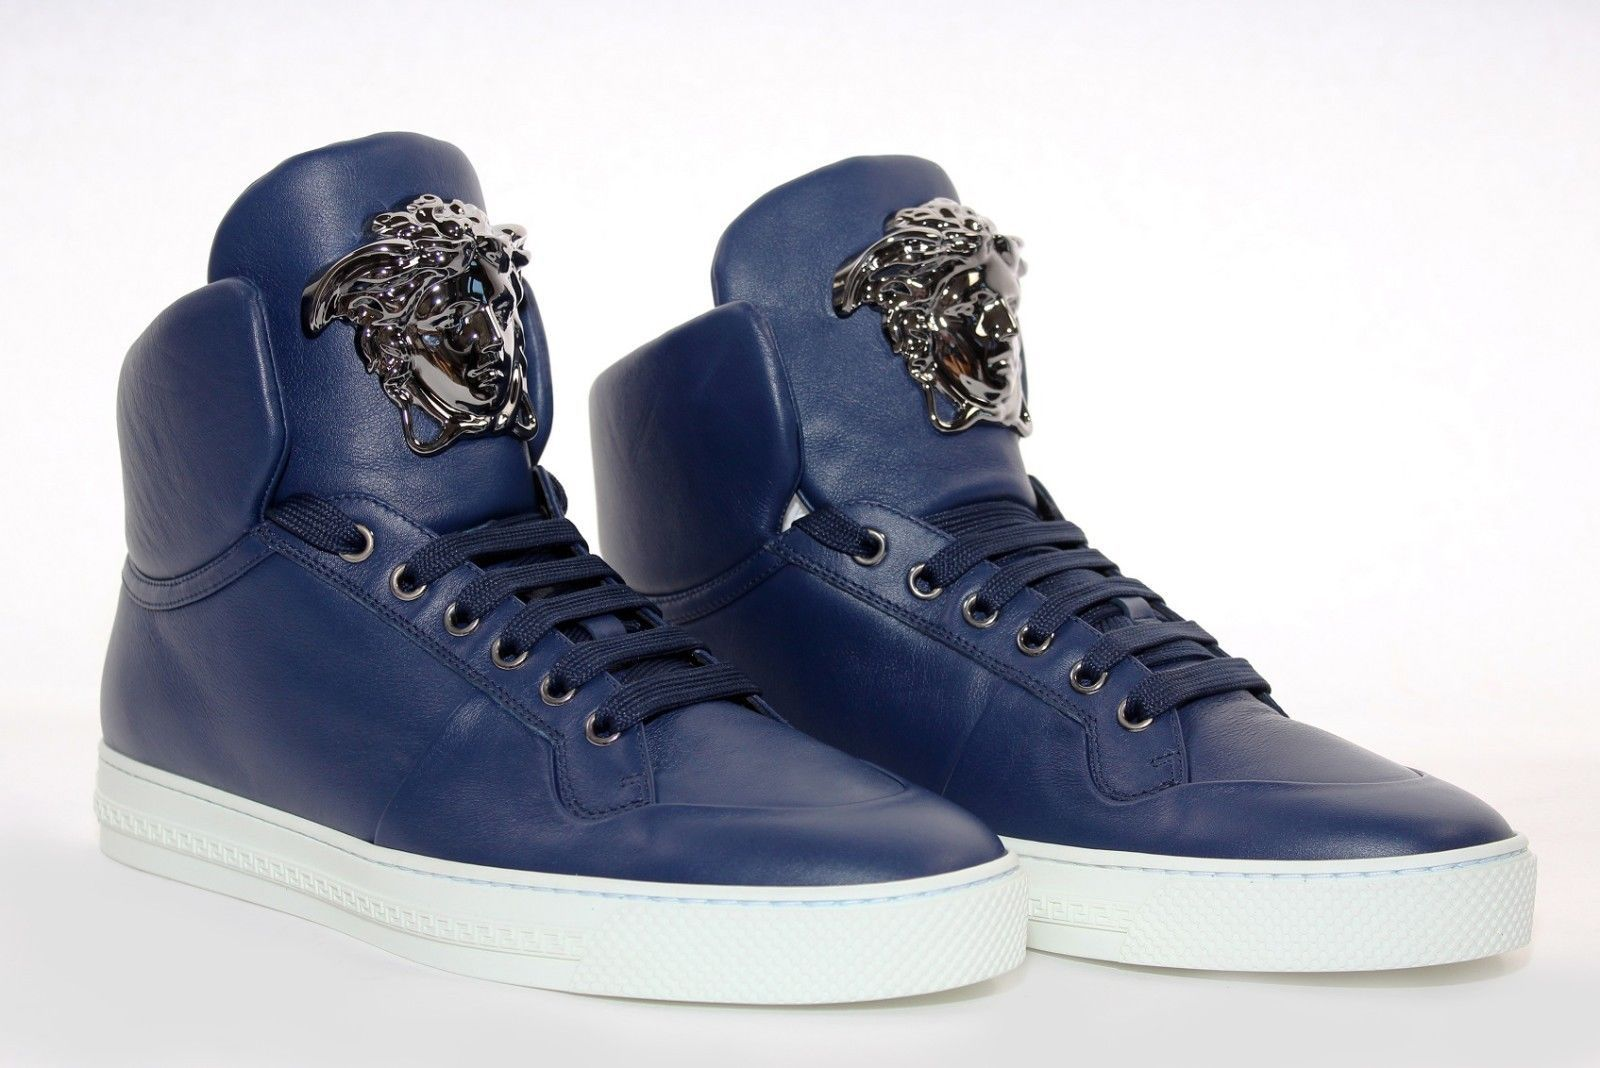 New Versace Blue Leather Palazzo High